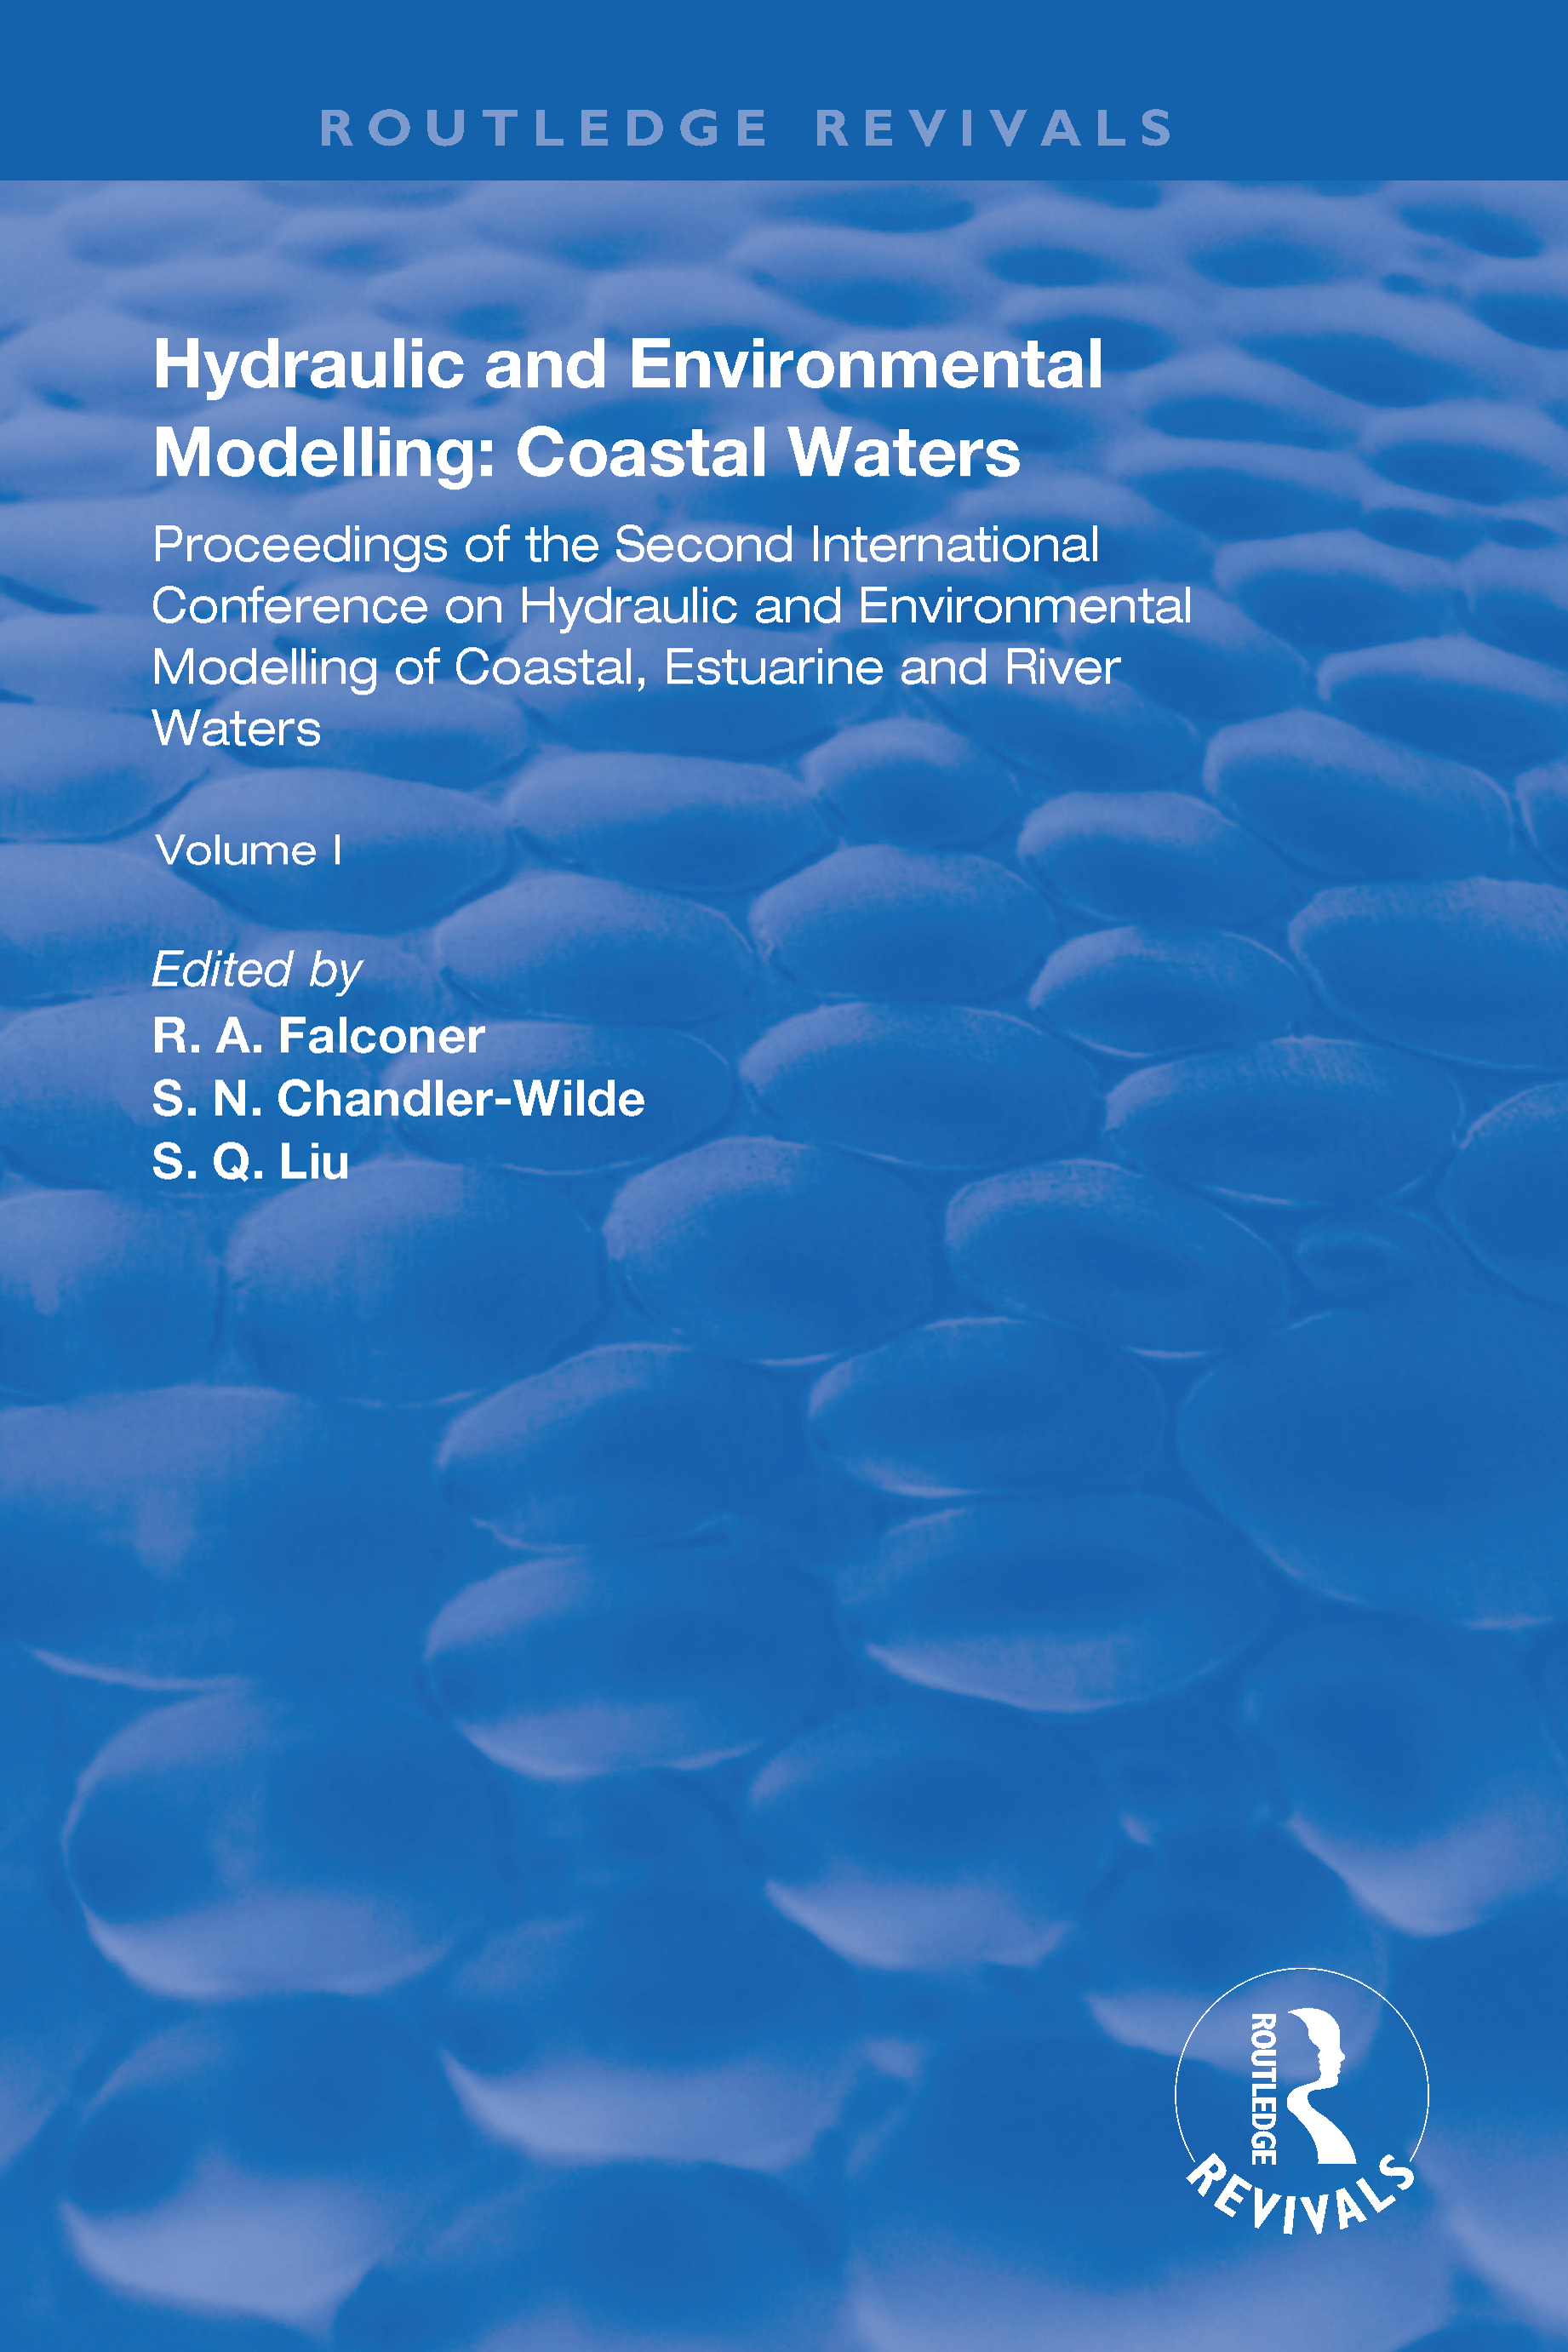 Hydraulic and Environmental Modelling: Proceedings of the Second International Conference on Hydraulic and Environmental Modelling of Coastal, Estuarine and River Waters. Vol. I., 1st Edition (Paperback) book cover